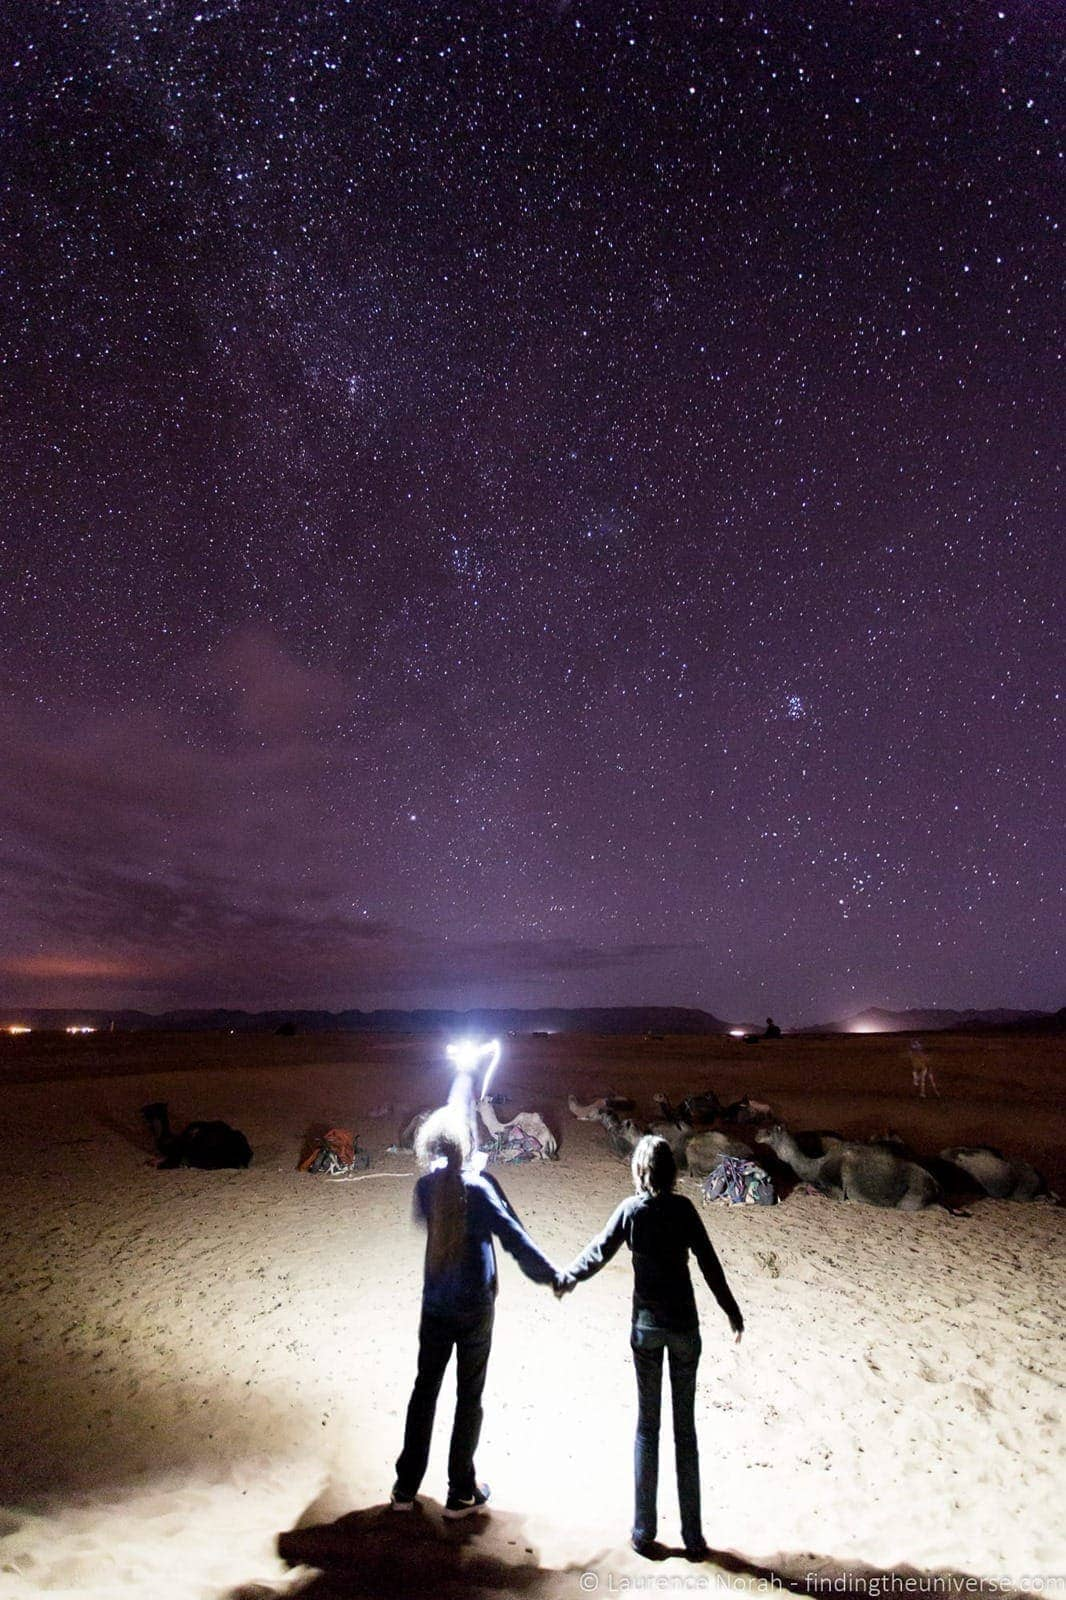 Star gazing Morocco and camels